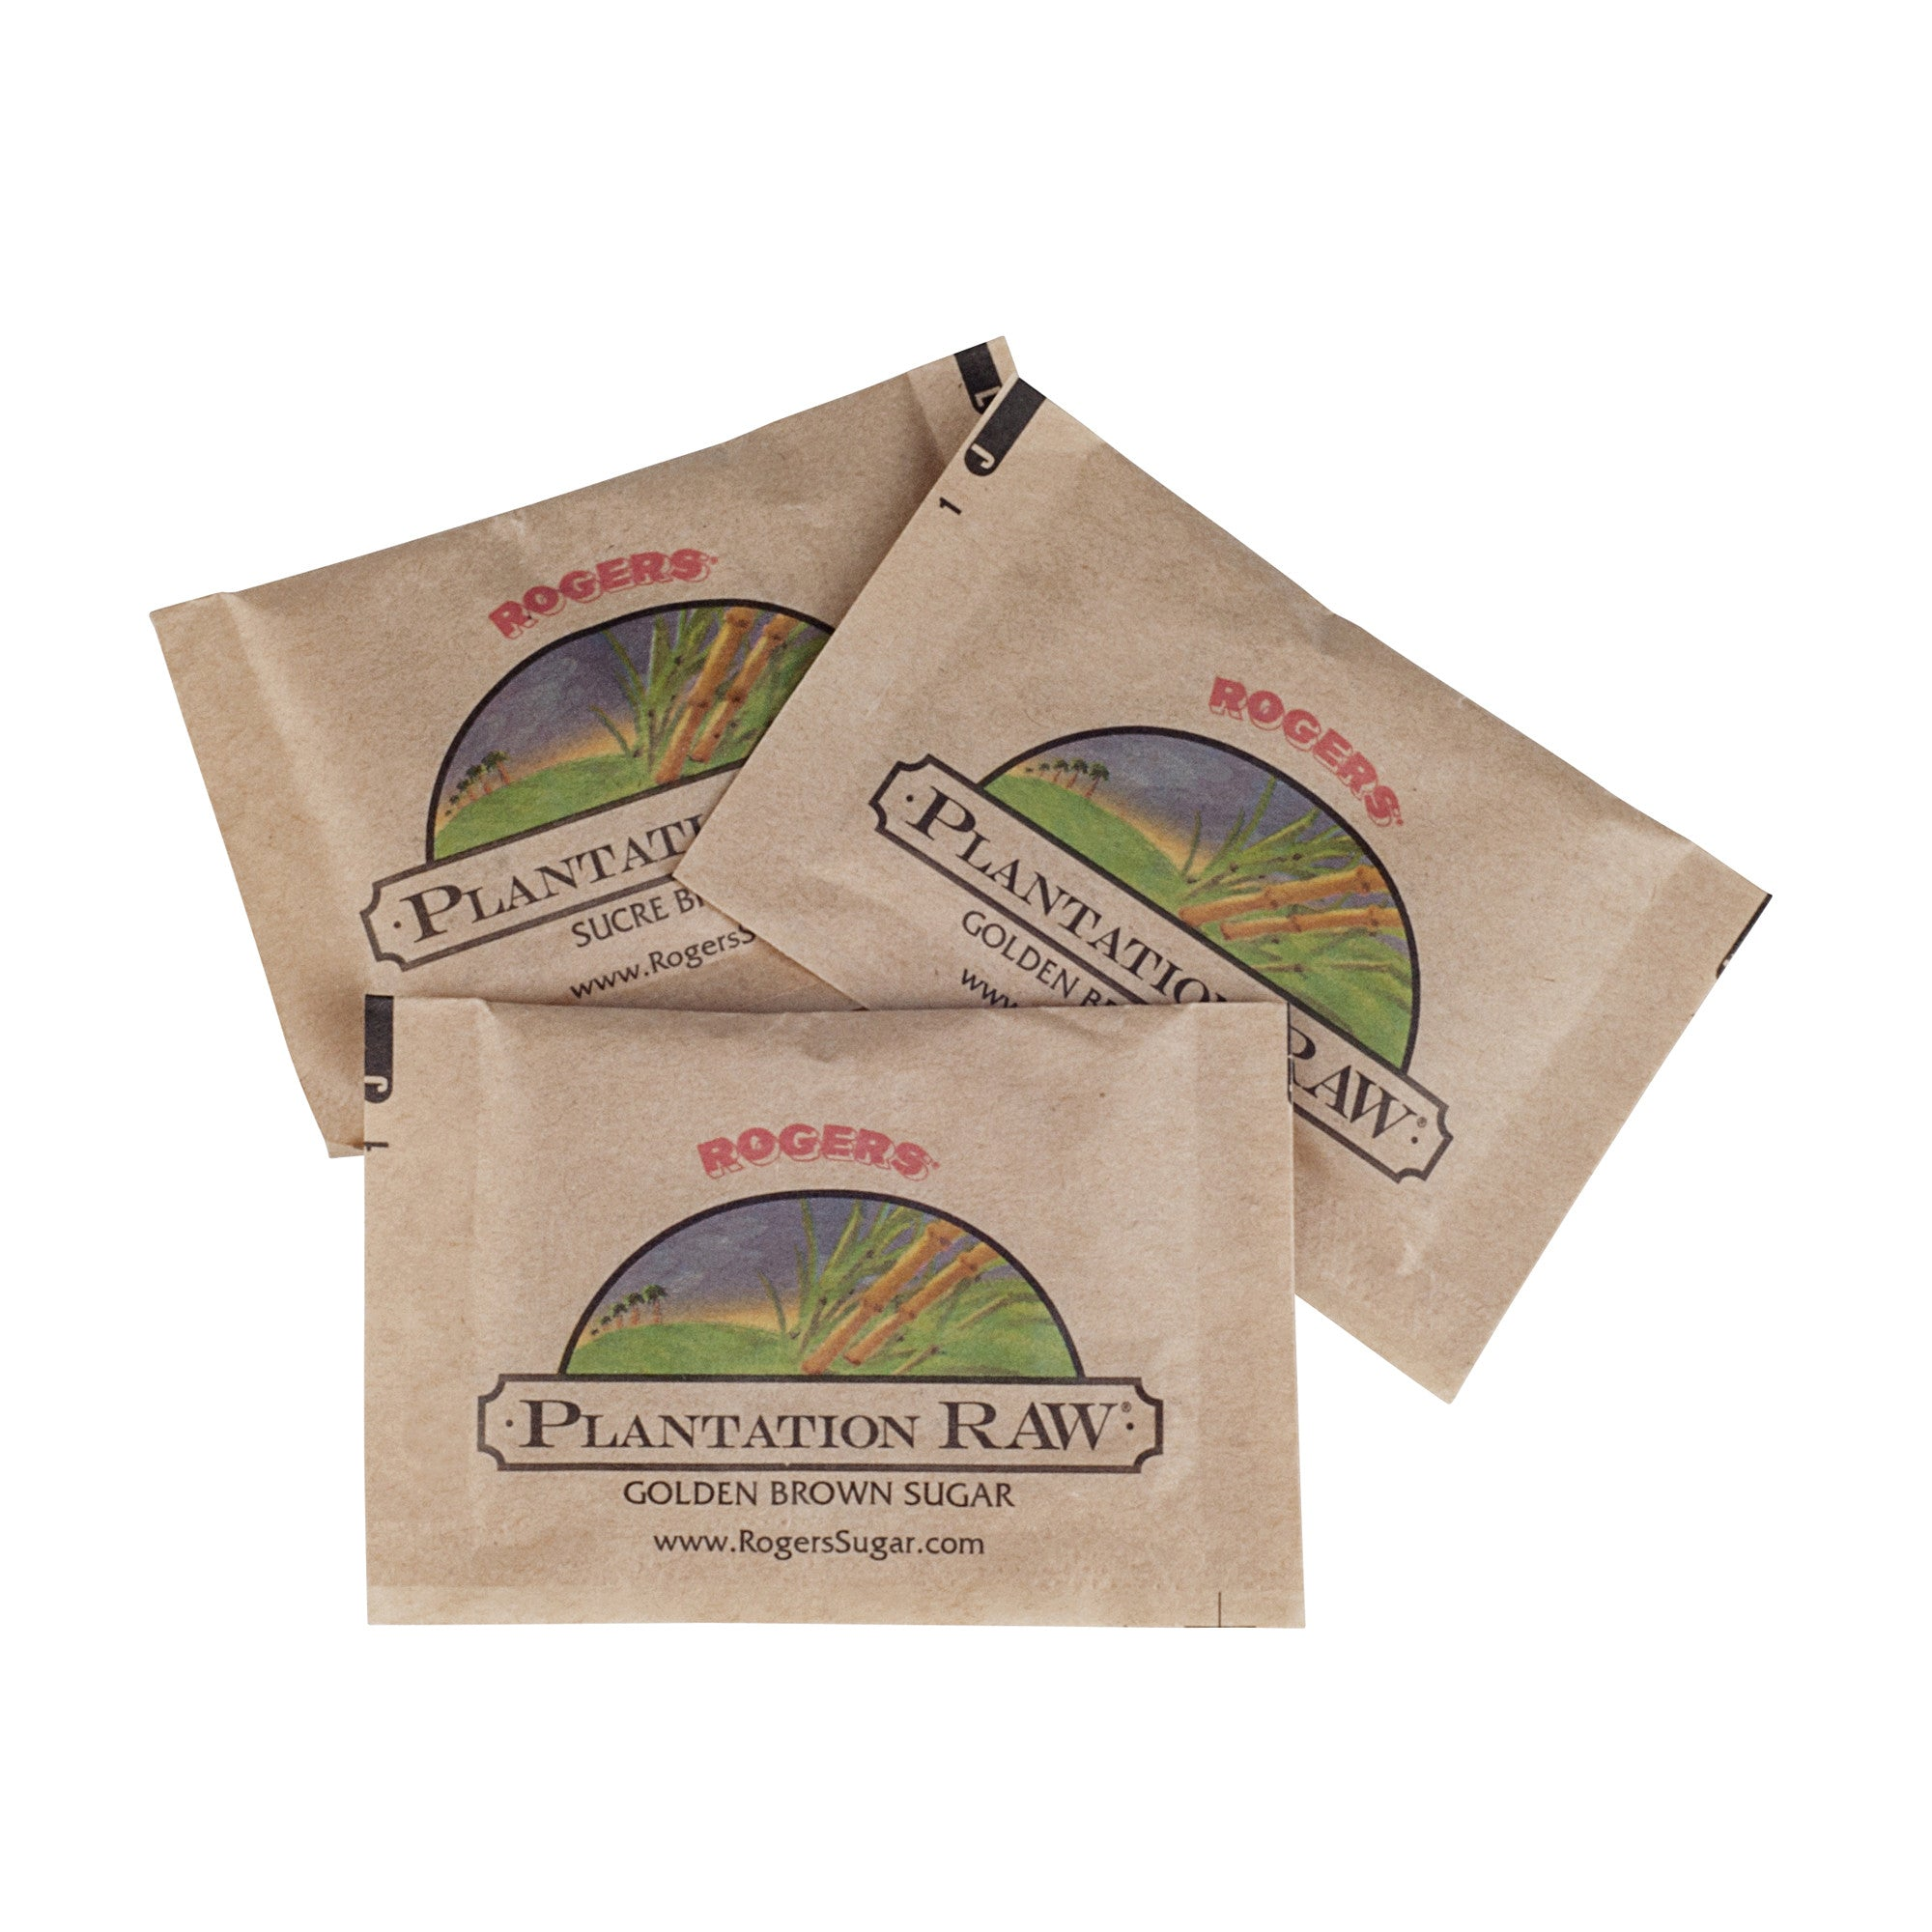 Plantation Raw Sugar 1000 envelopes WA2 Coffee Services